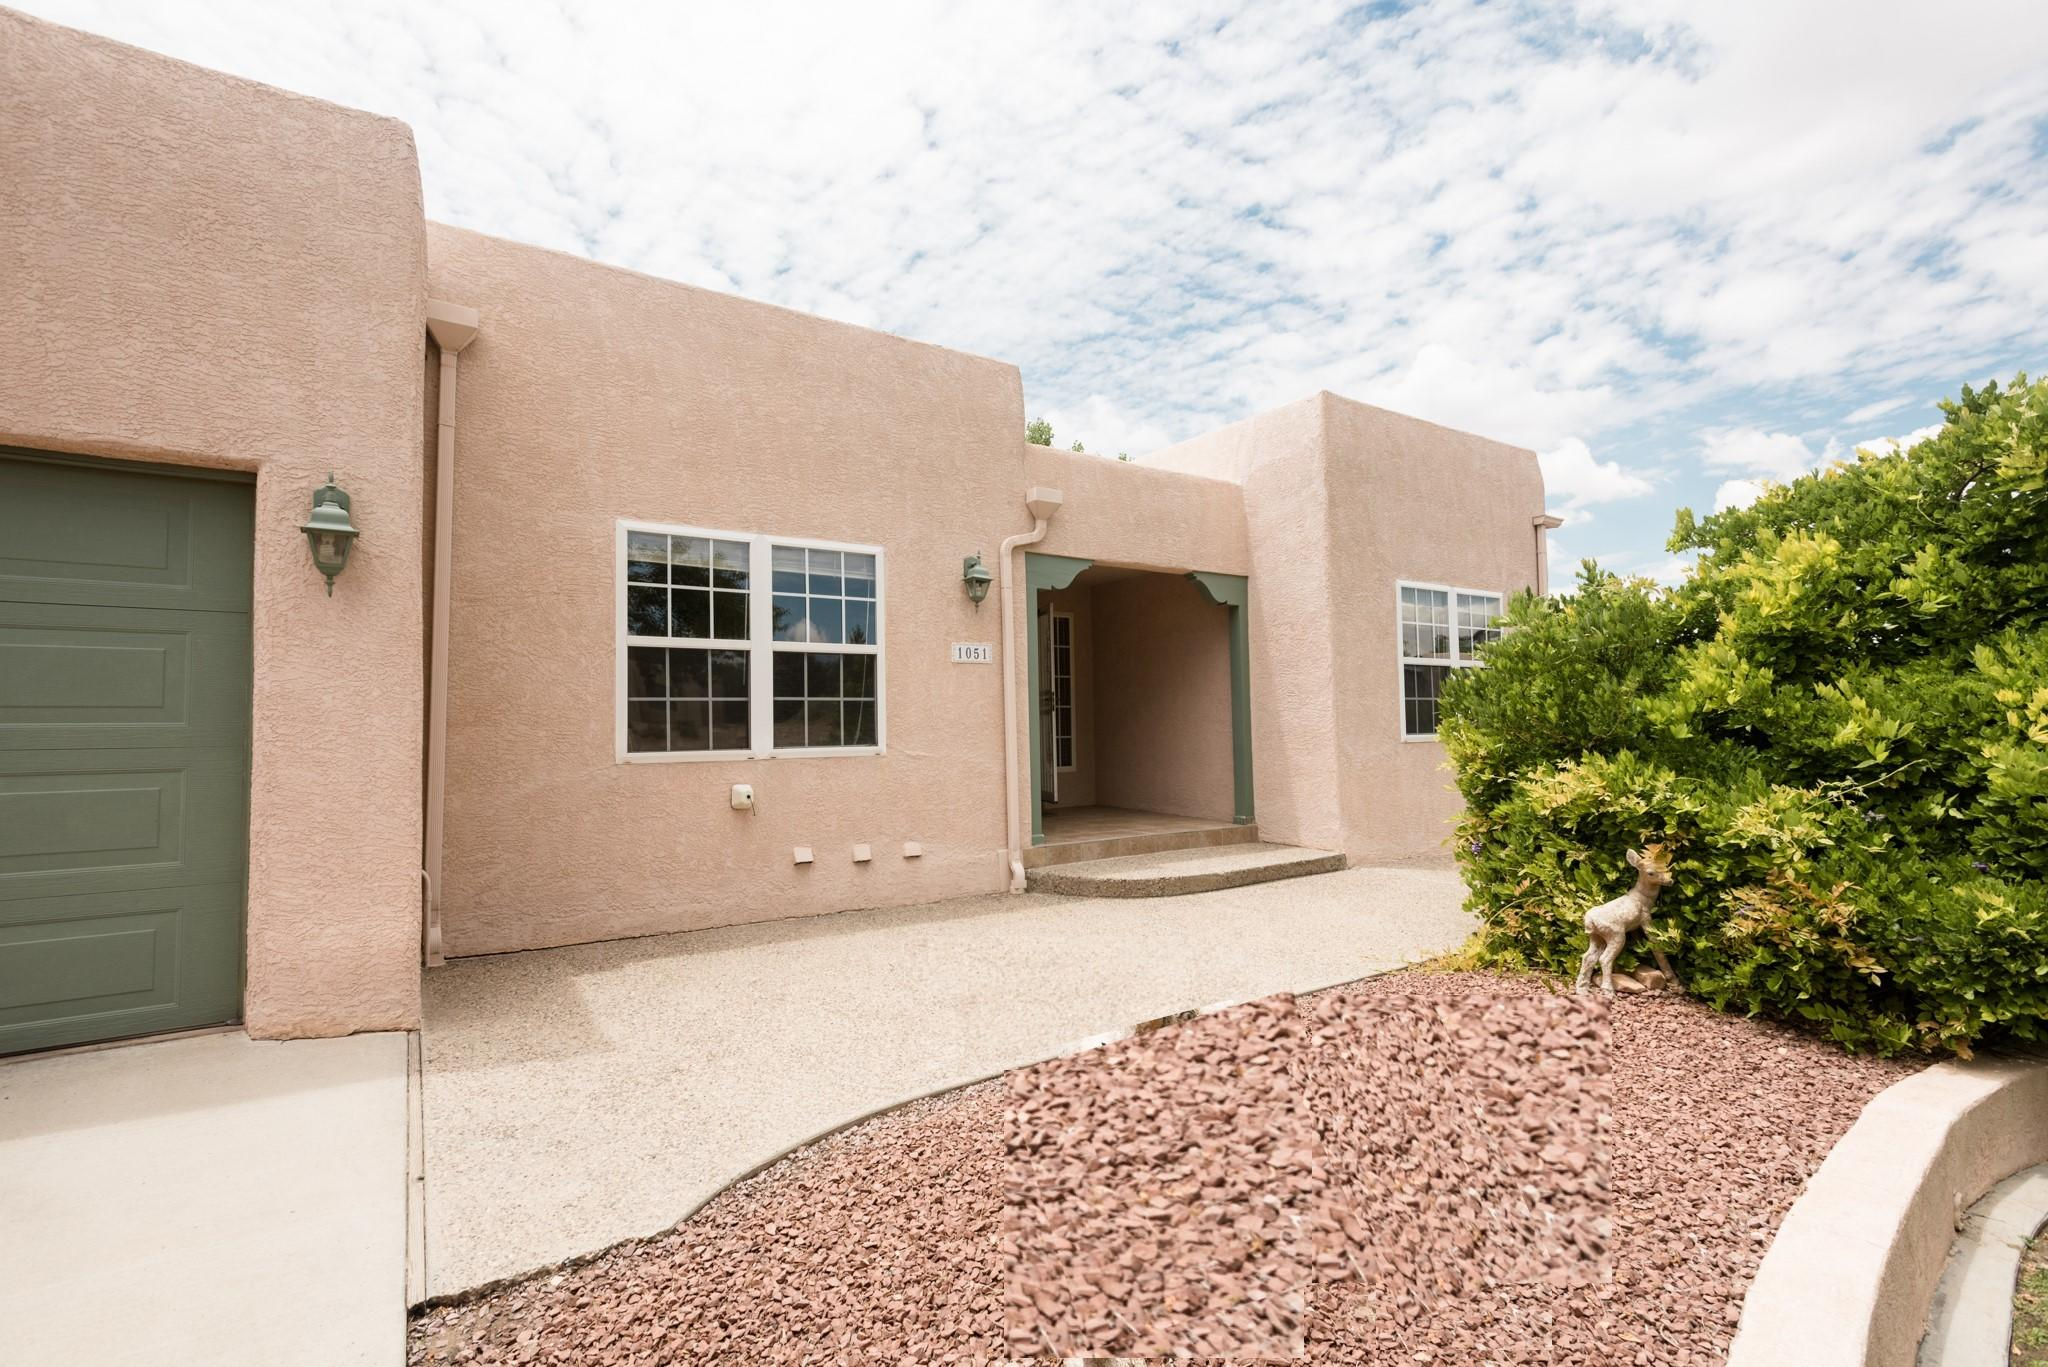 Beautiful custom built home located on a fully landscaped parcel with views of the Los Lunas Hill. Enjoy the sunsets from your covered back porches. Bring your RV, your trailers, and all your recreational vehicles this home has space. Three car garage with storage on main level and two car extended lower garage has large workshop not to mentioned the covered carport. The large open kitchen has an island and peninsula, lots of room to cook and bake all your culinary masterpieces. Home features a large laundry room with ample storage, family room, formal living, not to mention the downstairs recreational room with multiple doors that open up to the backyard. This home sits within five minutes of shopping center, parks, schools and highway. Come take a look and fall in love with your new home